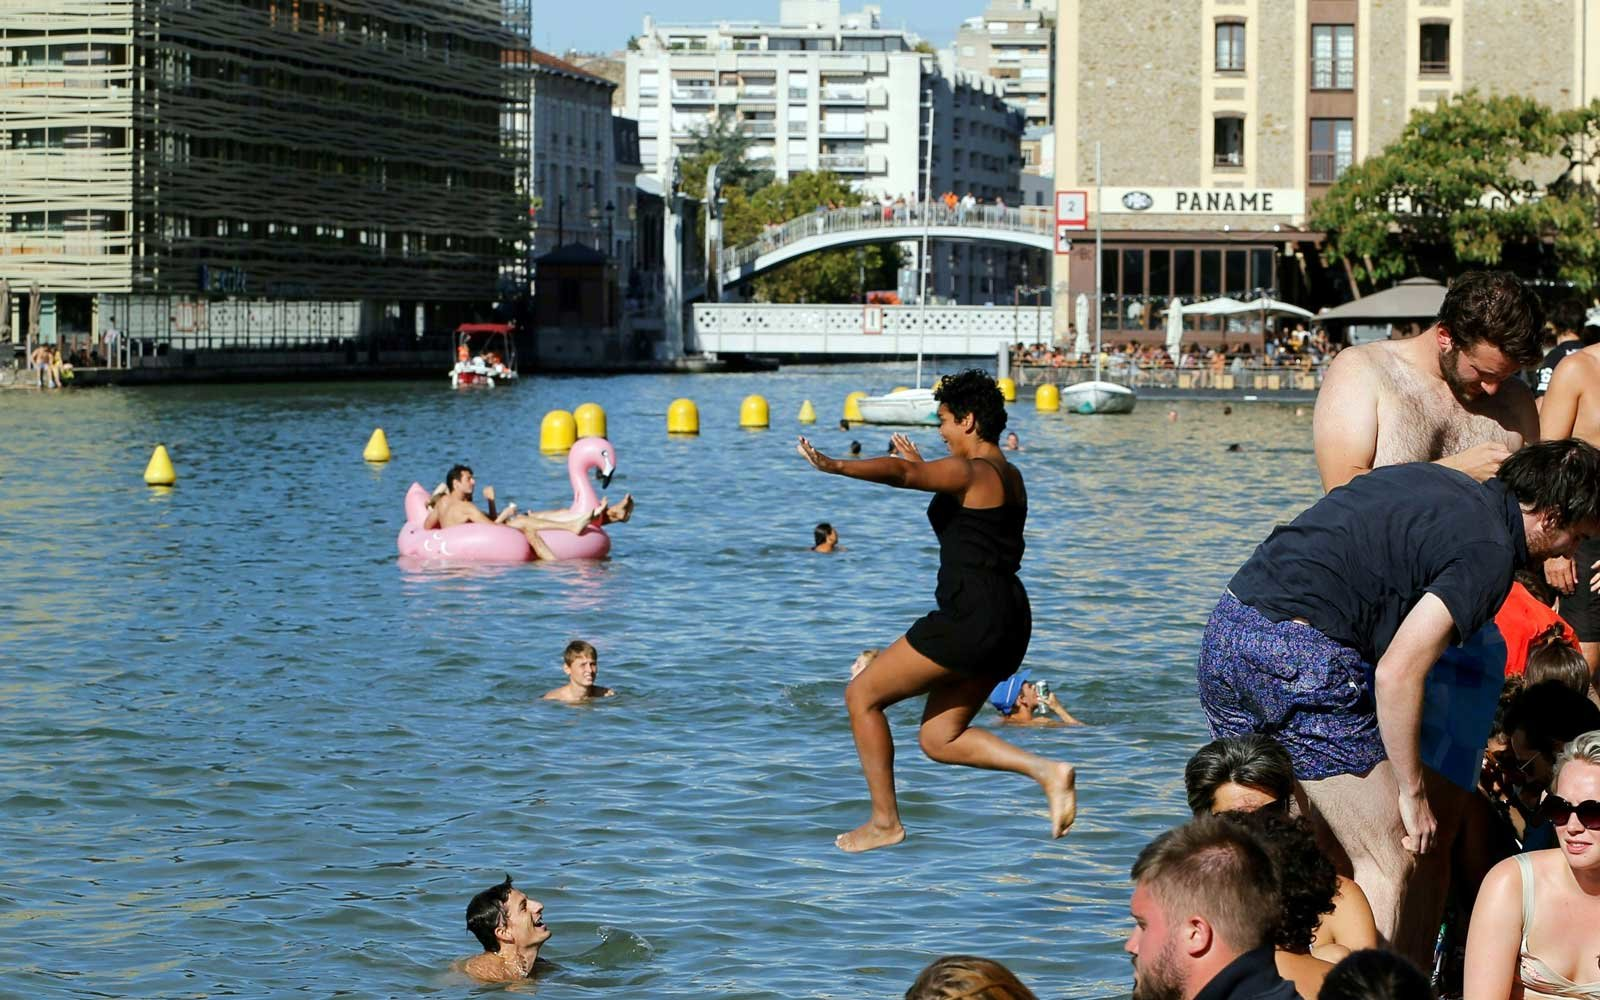 Paris is building swimming pools in its canals